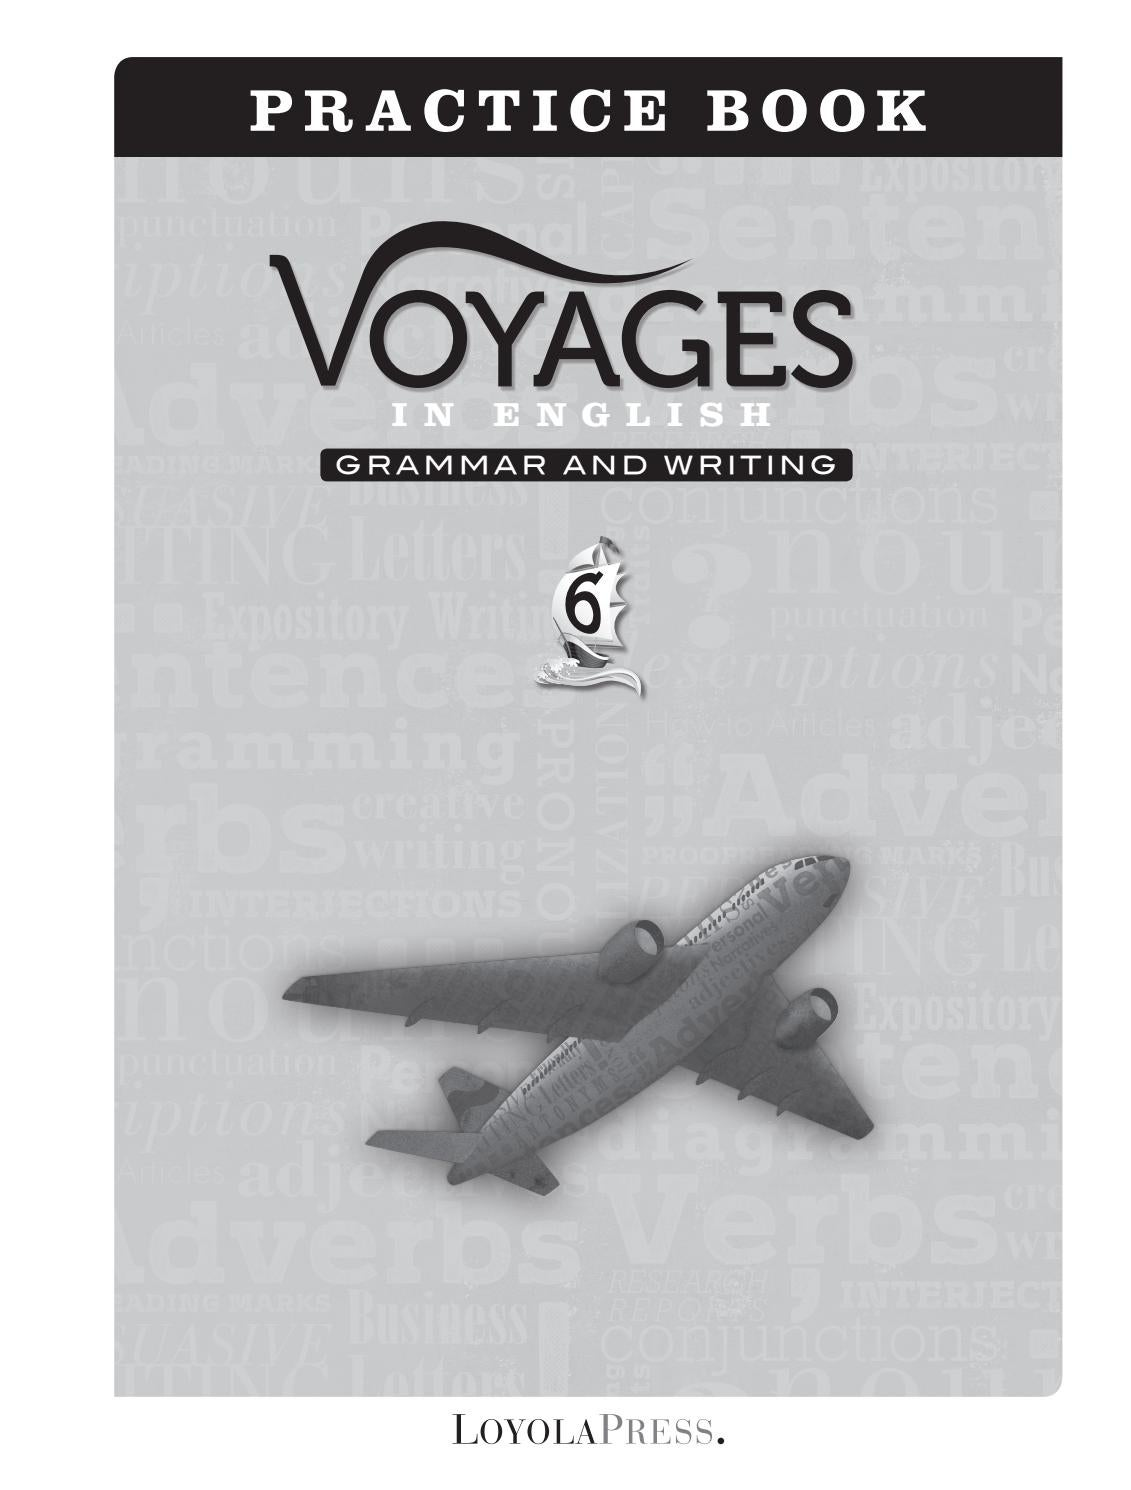 Voyages in English 2018, Practice Book, Grade 6 by Loyola Press - issuu